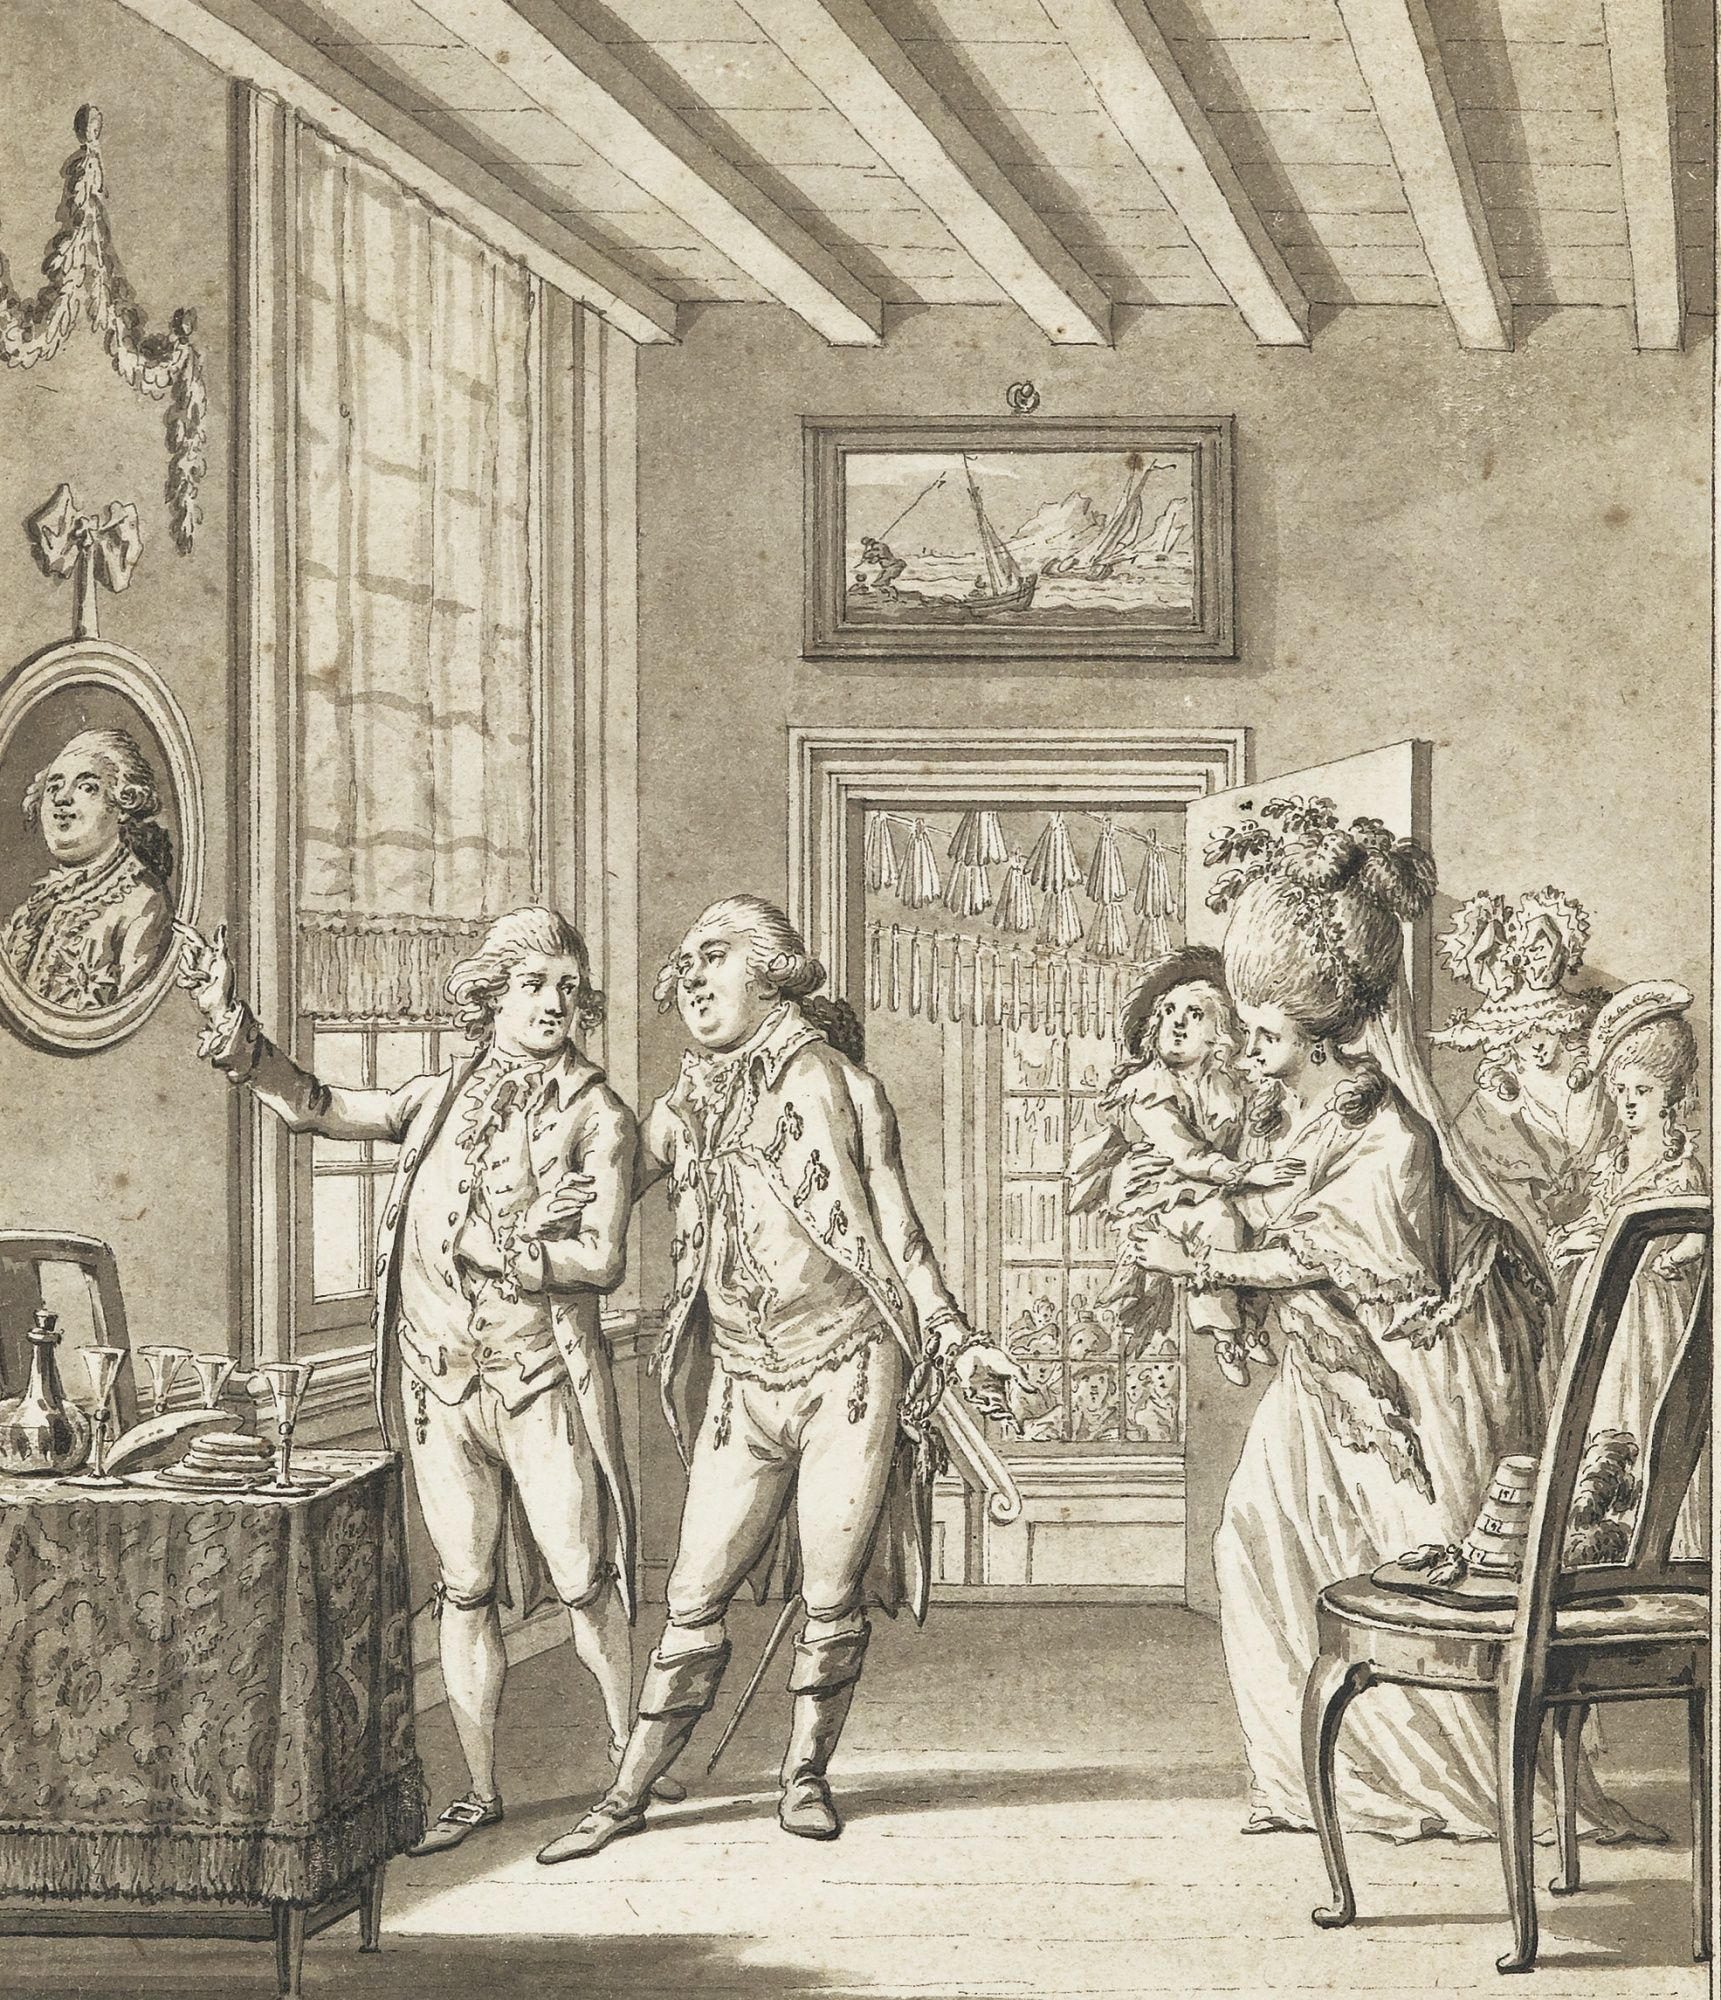 Louis XVI and his family recognized at Varenne, early 1790's by François-Marie-Isidore Queverdo (1748-1797)